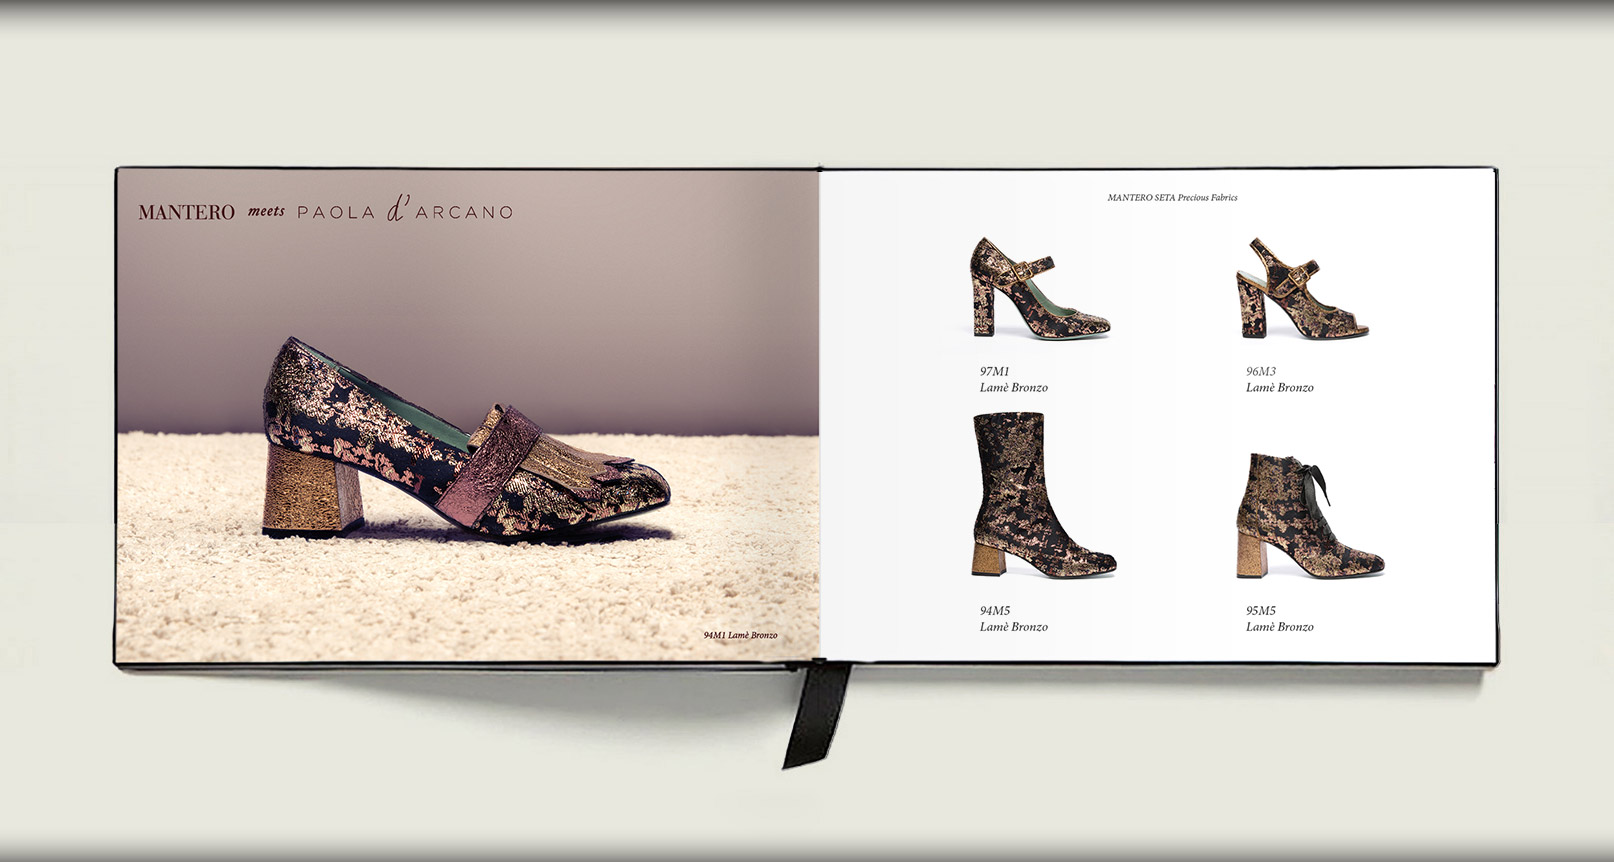 Advertising Paola D'Arcano Shoes Made in Italy - 8